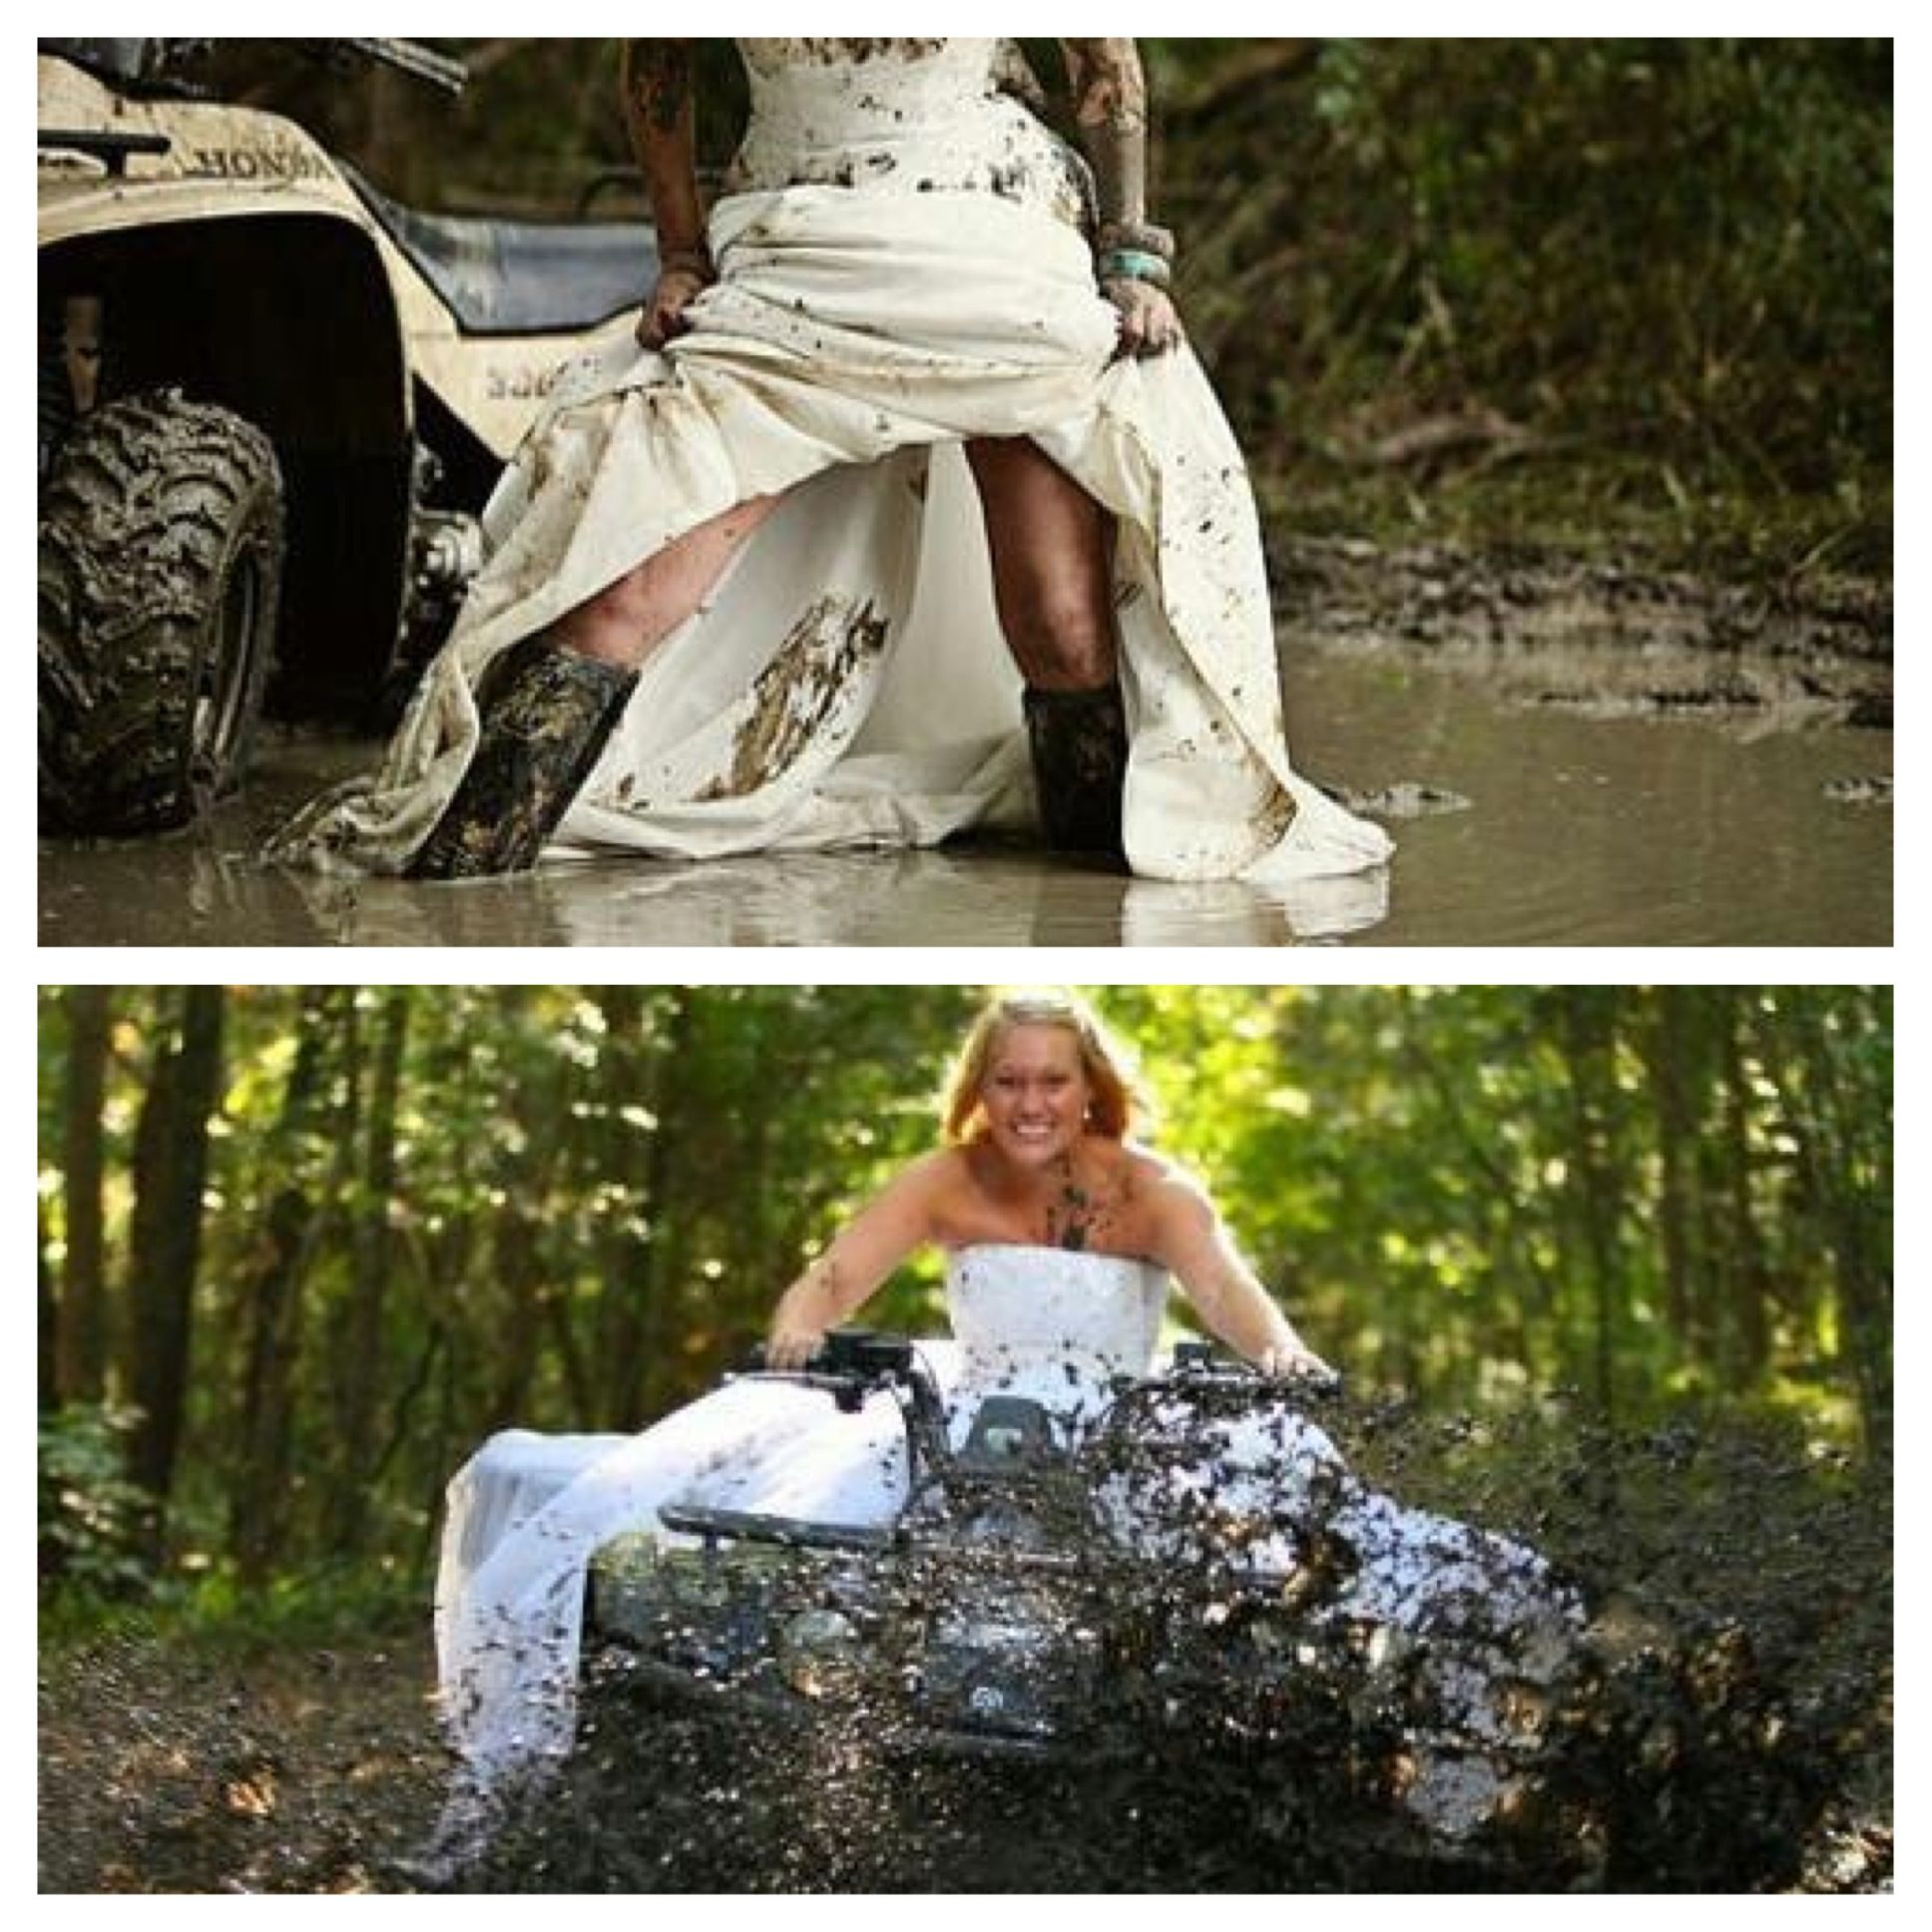 So U Always Here About These Trash The Dress Photo Shoot Things..... Well I Want To Do This One